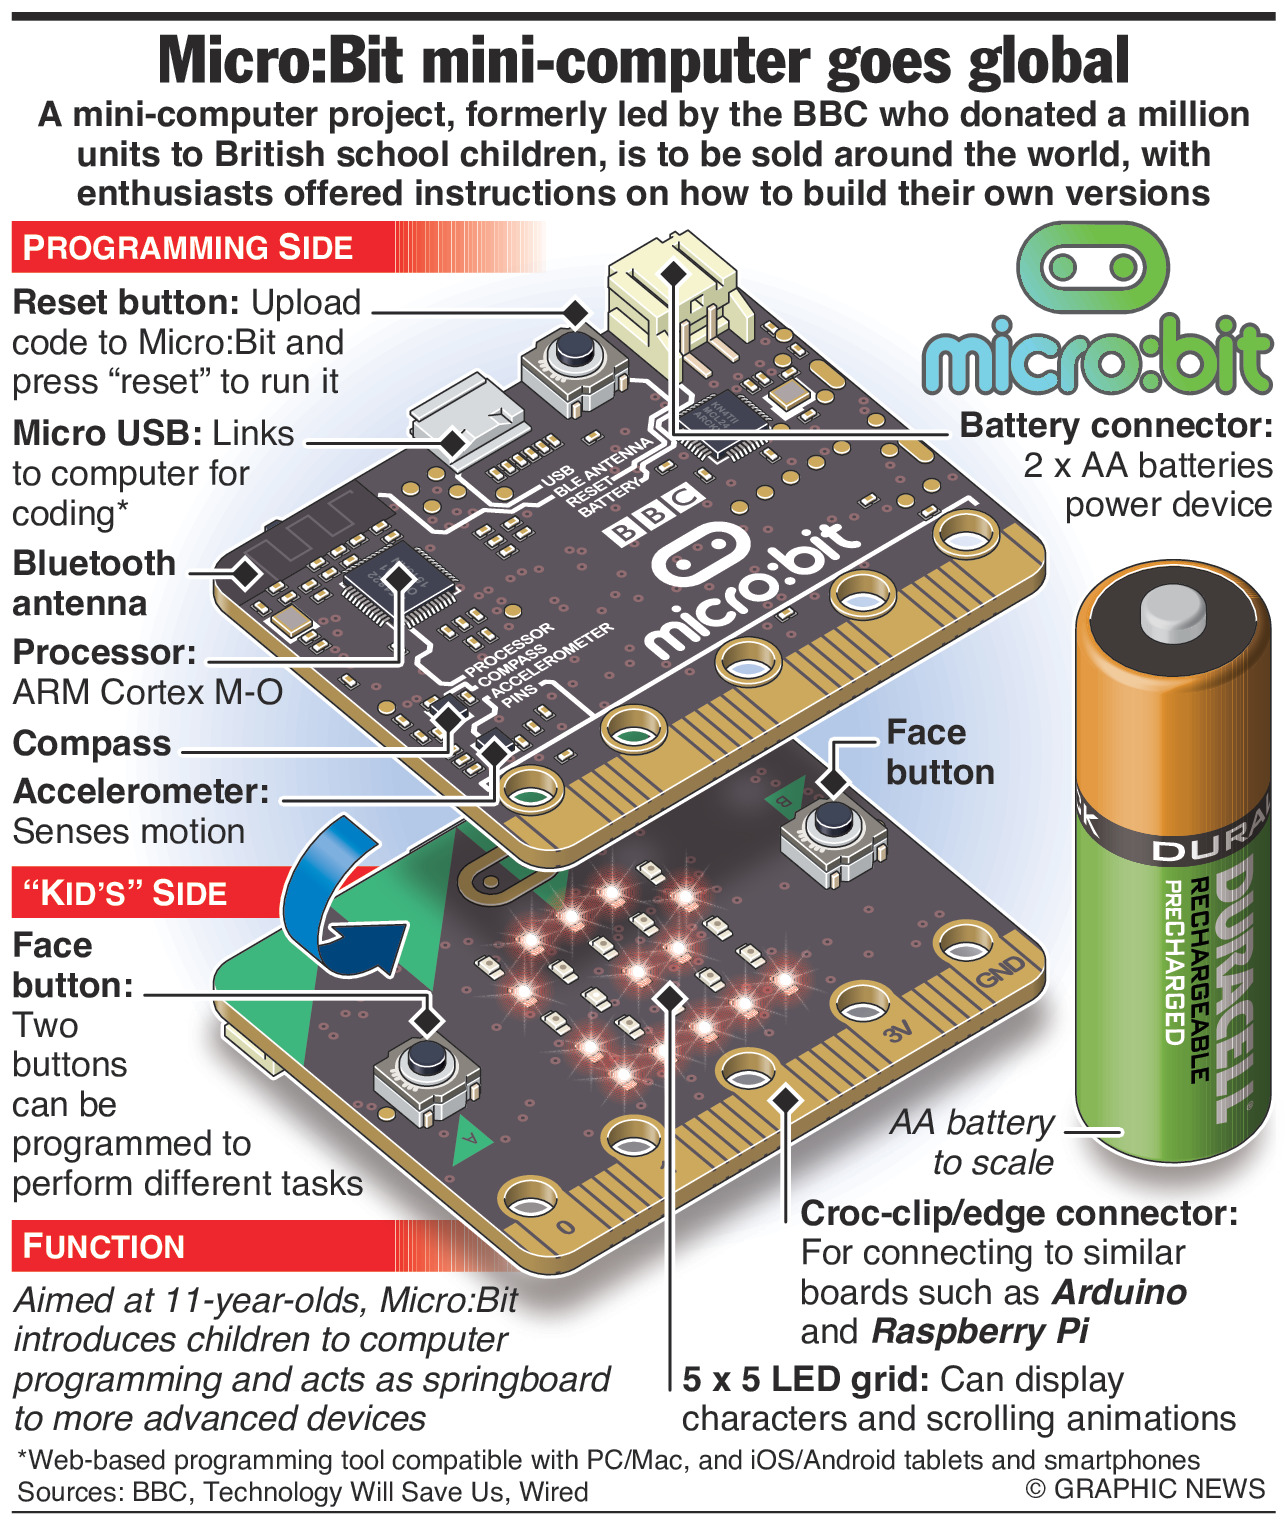 Bbc microbit projects to do at home.